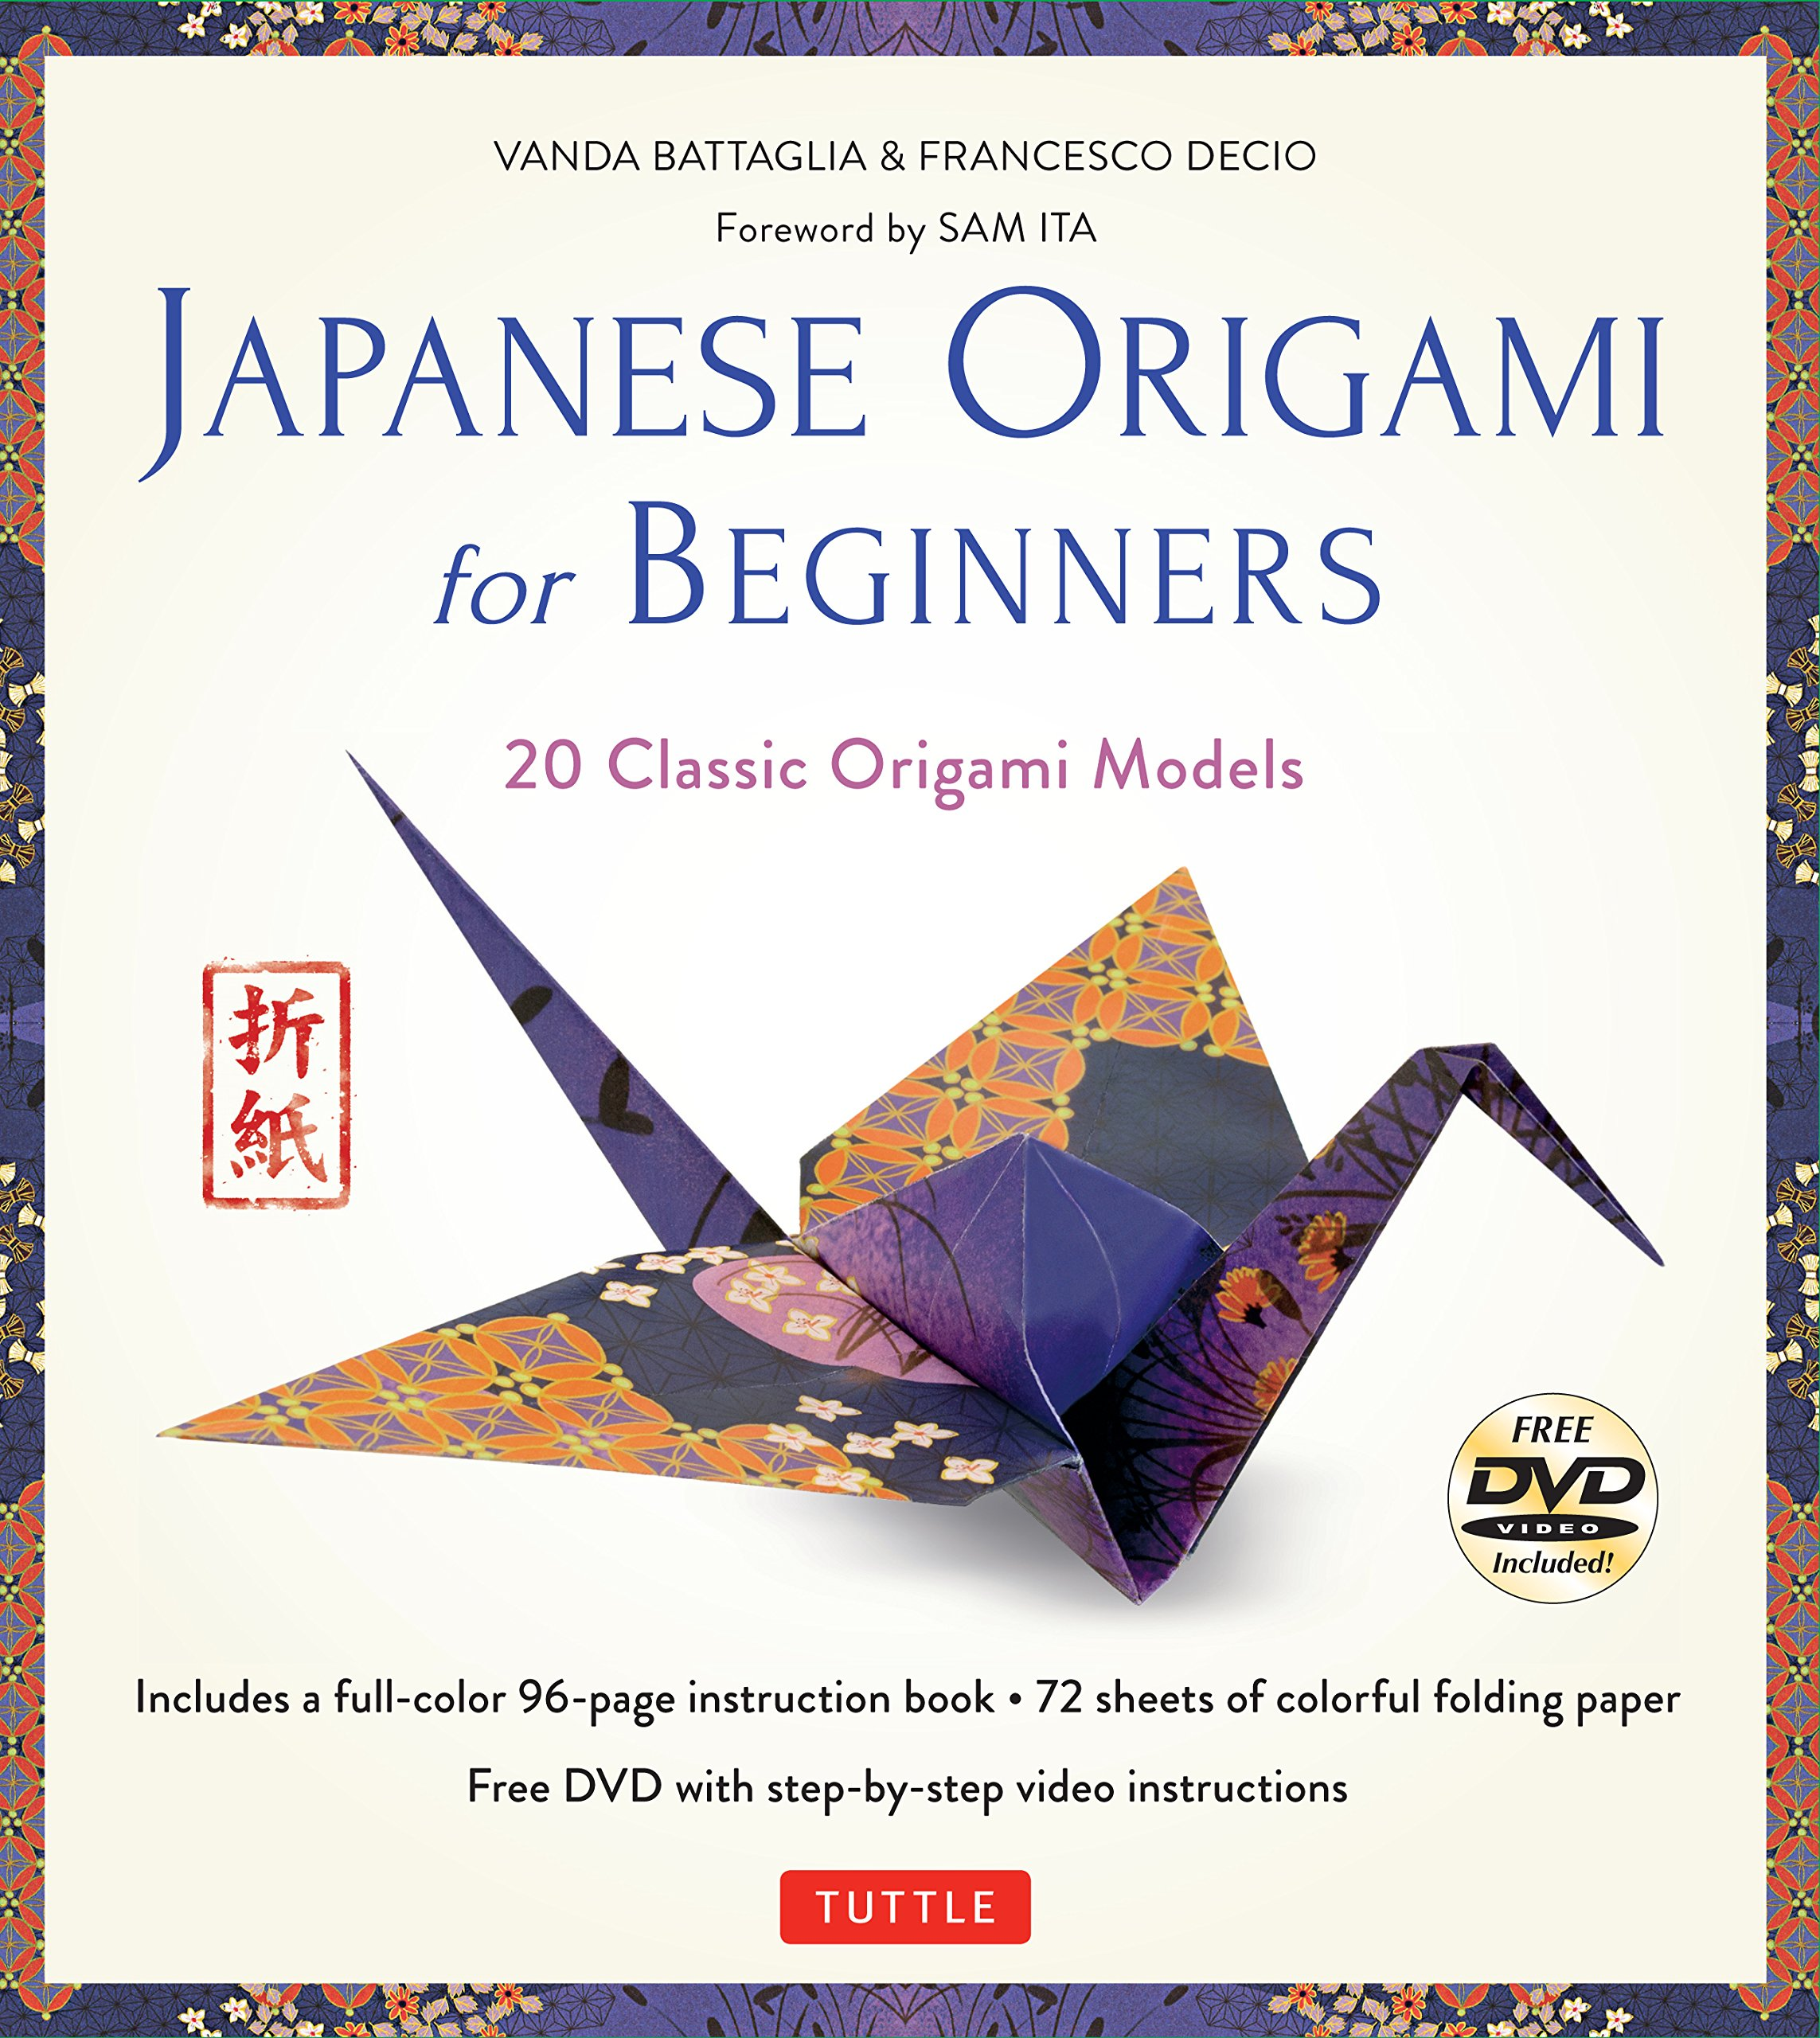 Amazon Japanese Origami For Beginners Kit 20 Classic Models With 96 Page Book 72 High Quality Papers And Instructional